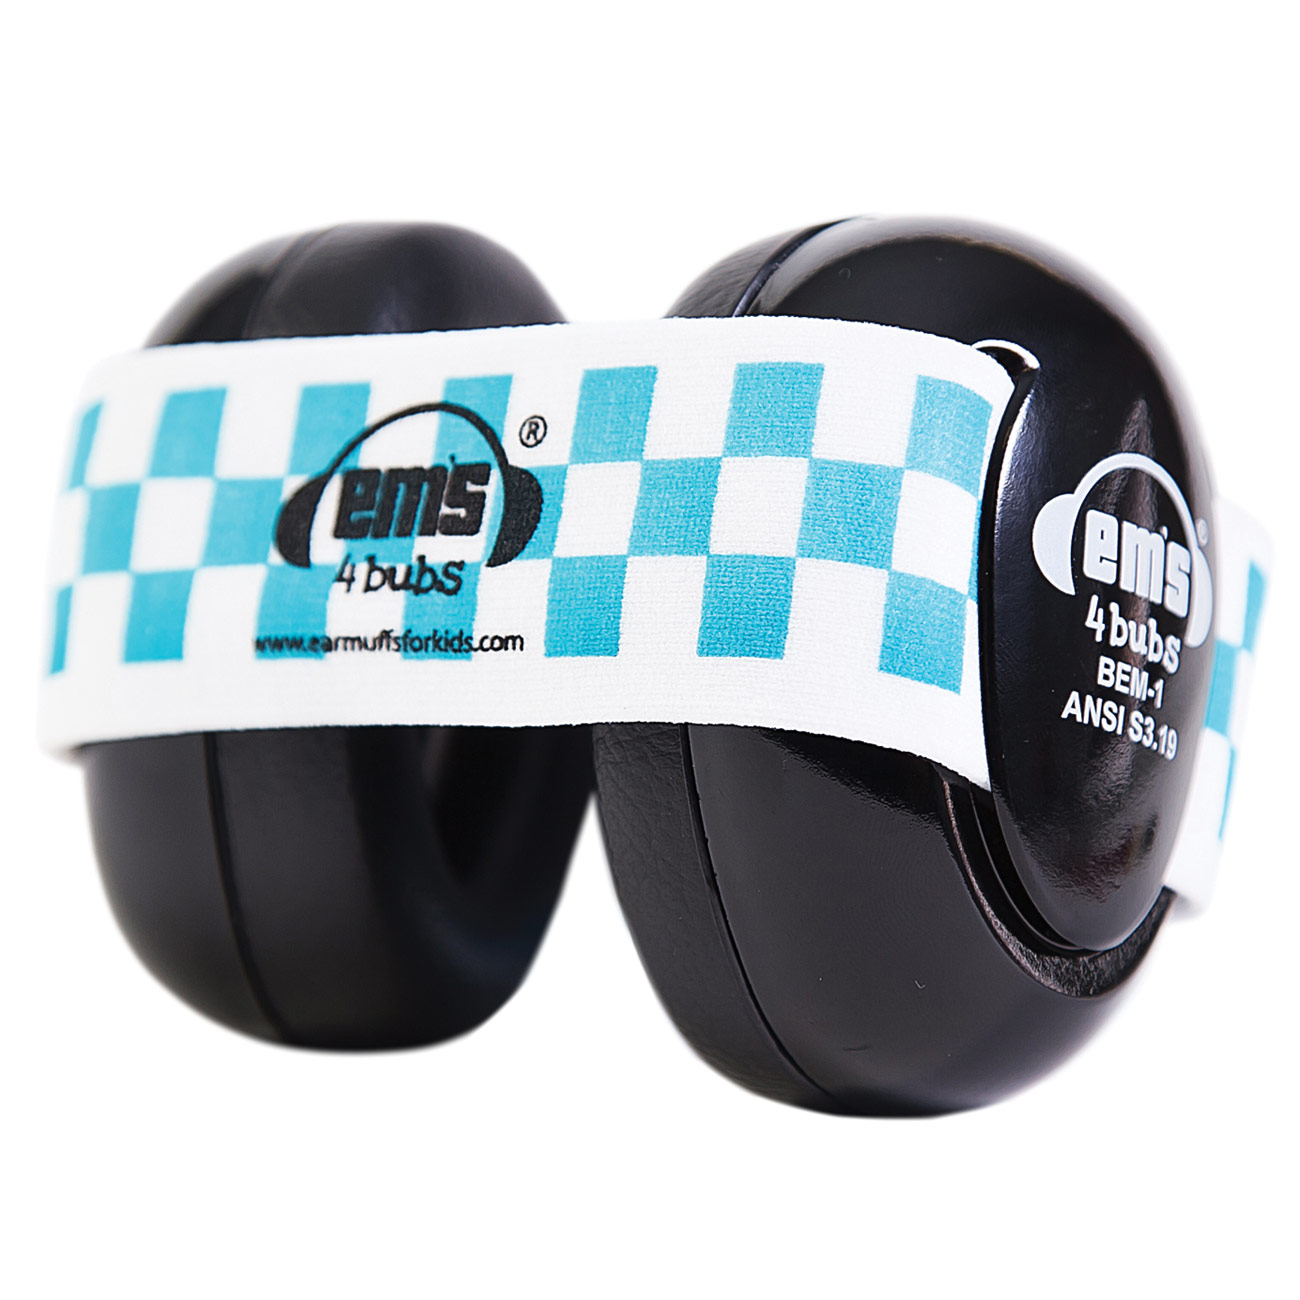 Ems 4 Bubs Baby Hearing Protection Black Earmuffs- Blue-White